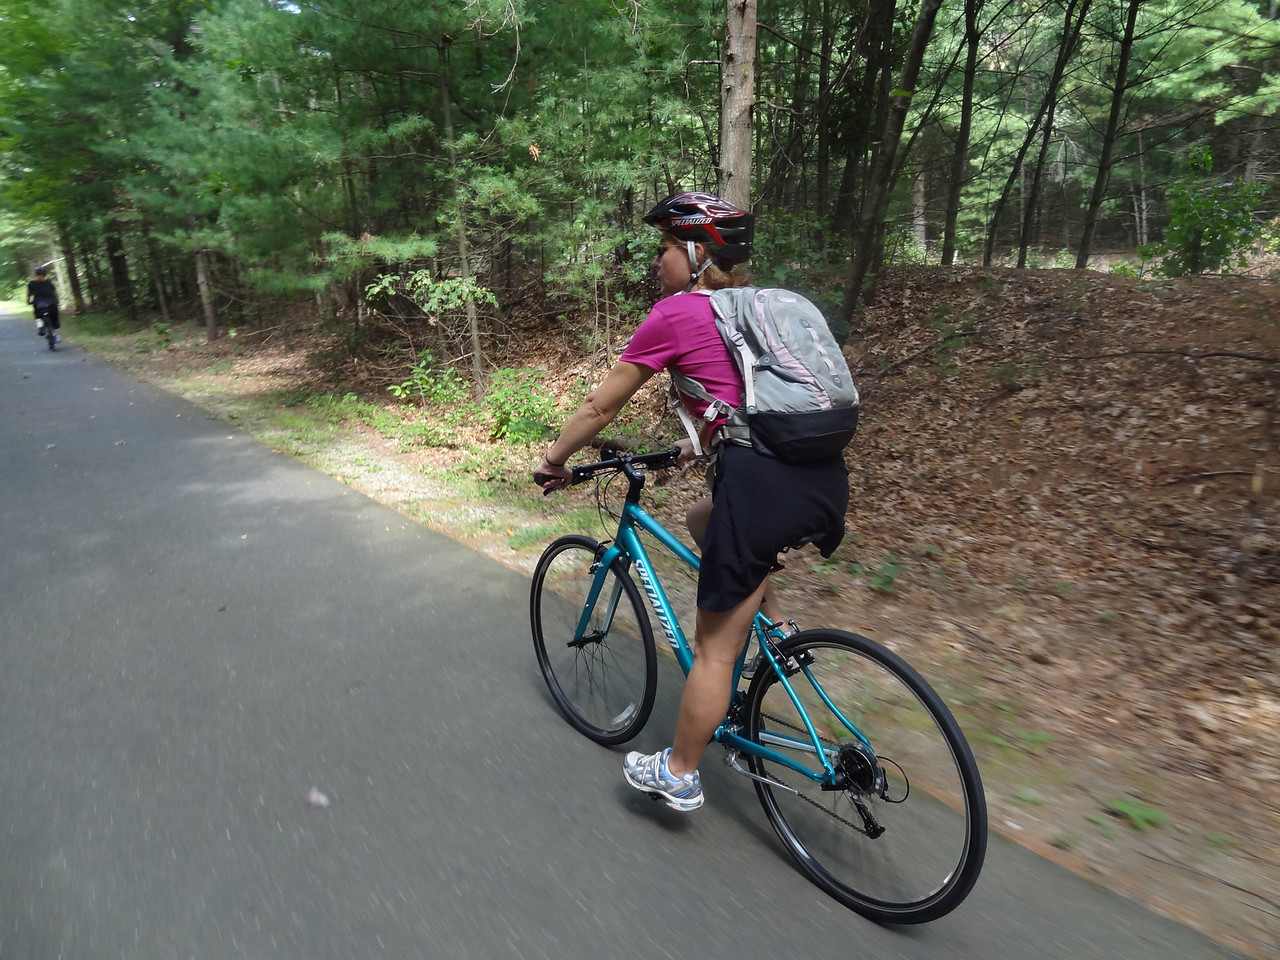 Anna's new bike: a Specialized Maneater II.